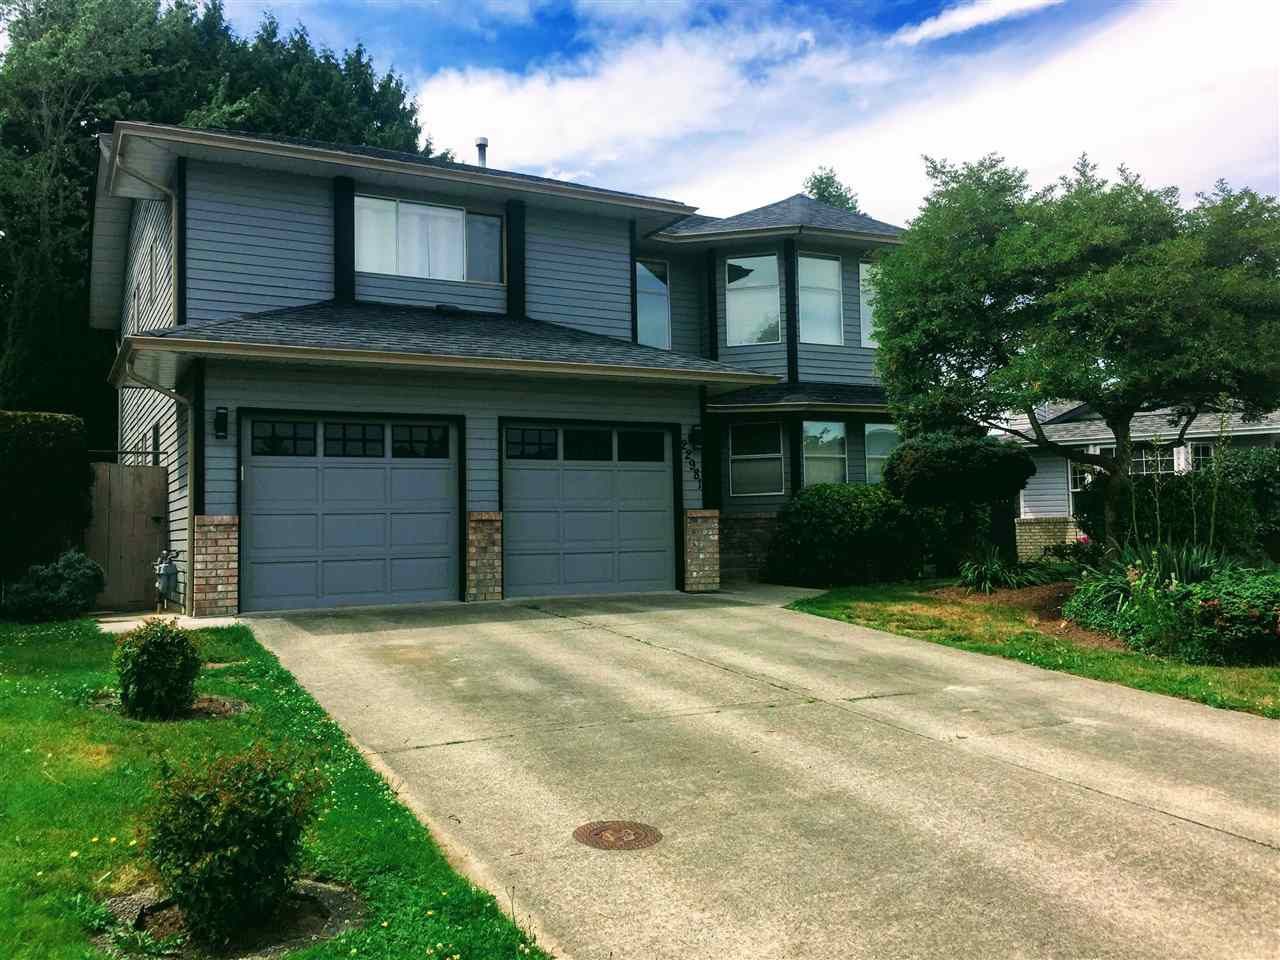 Main Photo: 22981 124B Avenue in Maple Ridge: East Central House for sale : MLS®# R2284914